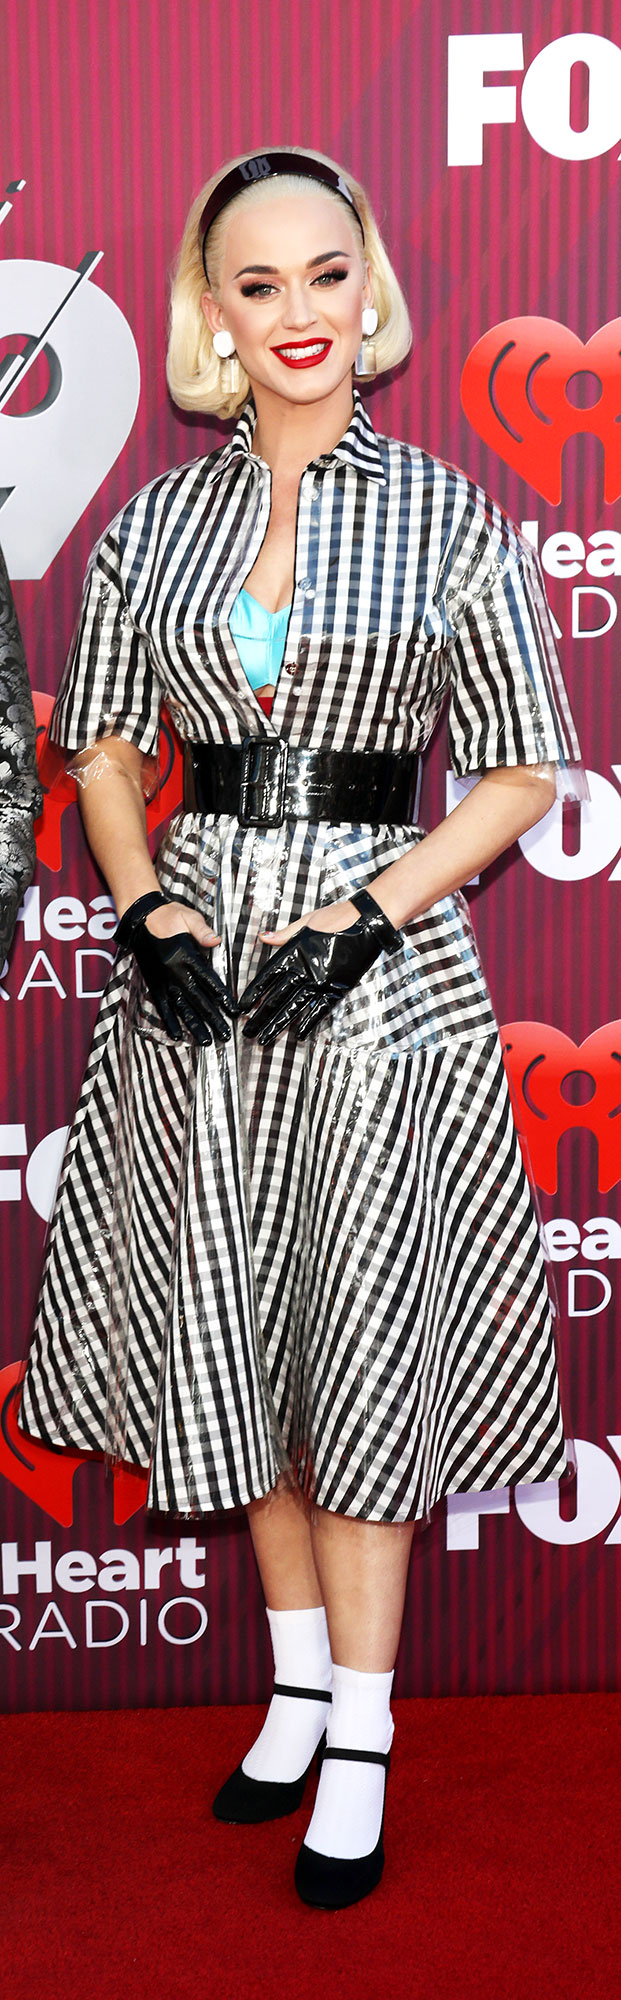 Katy Perry See What the Stars Wore to the iHeart Radio Music Awards 2019 - Wearing a black and white gingham mididress with a bright blue bra.